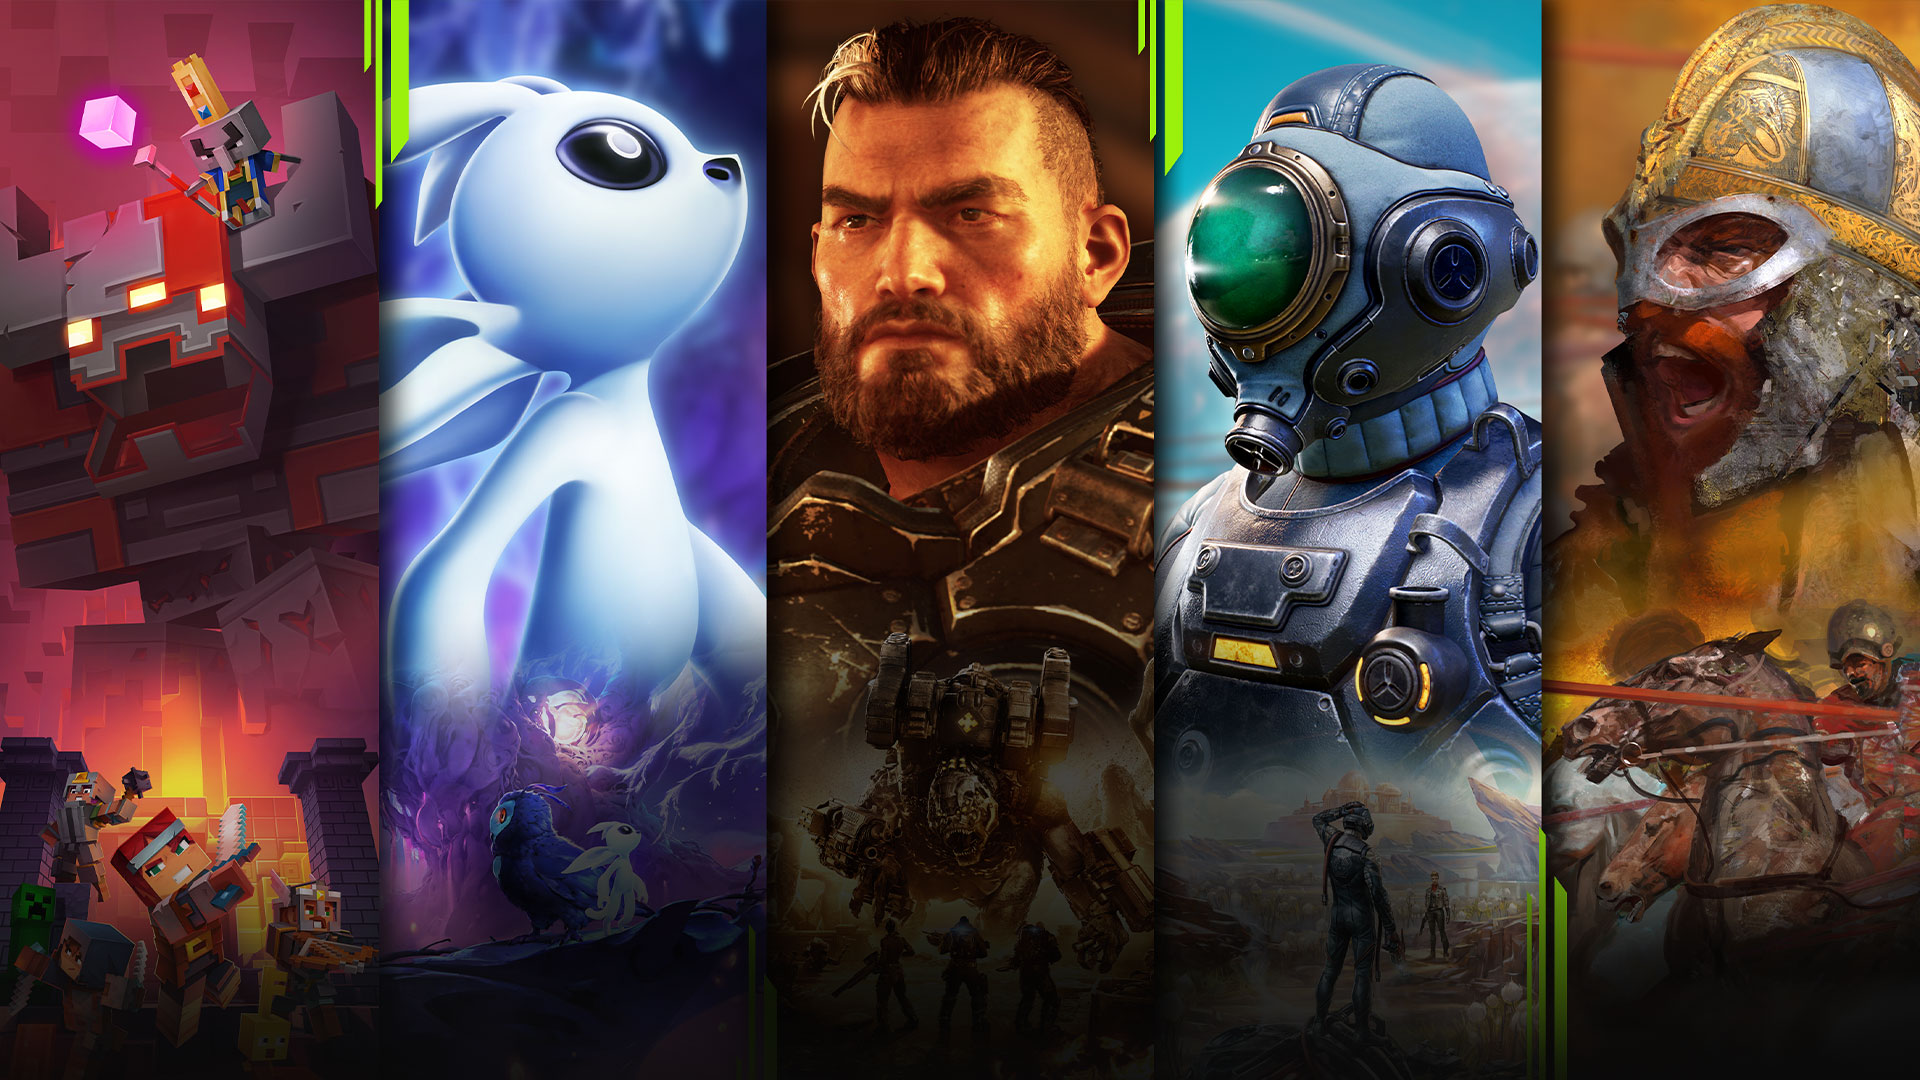 透過 Xbox Game Pass for PC 提供的多款遊戲的遊戲圖片,其中包括 Minecraft Dungeons、Ori and the Will of the Wisps、Gears Tactics、The Outer Worlds 和 Age of Empires 2: Definitive Edition。